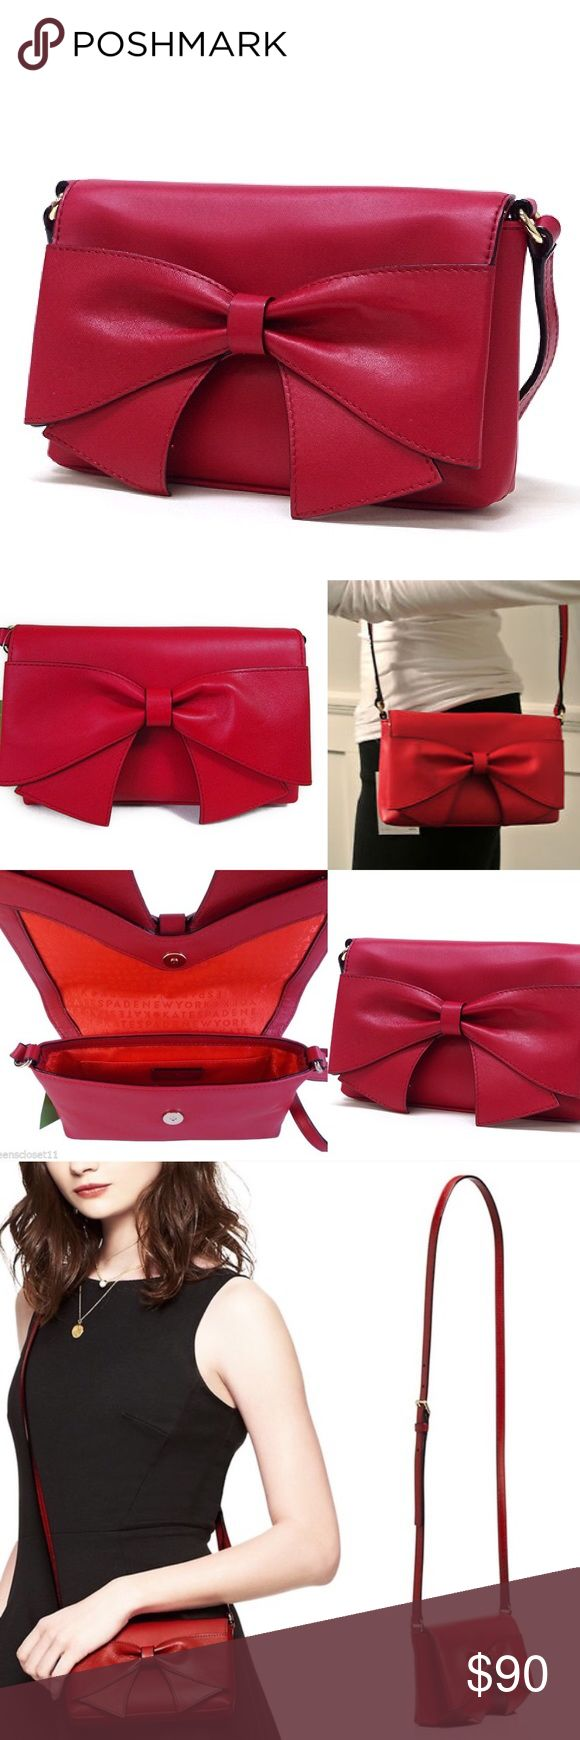 """Kate Spade red Aster cross body handbag Kate Spade """"Dynastyred"""" Aster crossbody handbag. NWT and gift box. Was given to me as a gift and it's too small for me (I carry large bags). Brand new - last photo shows bag in original protective packaging.  4.5""""x7.4"""".  Total strap length 45.7"""". Smooth cowhide leather. Capital Kate jacquard lining. 14 karat light gold plated hardware. Adjustable strap and snap closure. Interior slide pocket. Exterior bow detail. Imported. Great bag!! kate spade Bags…"""